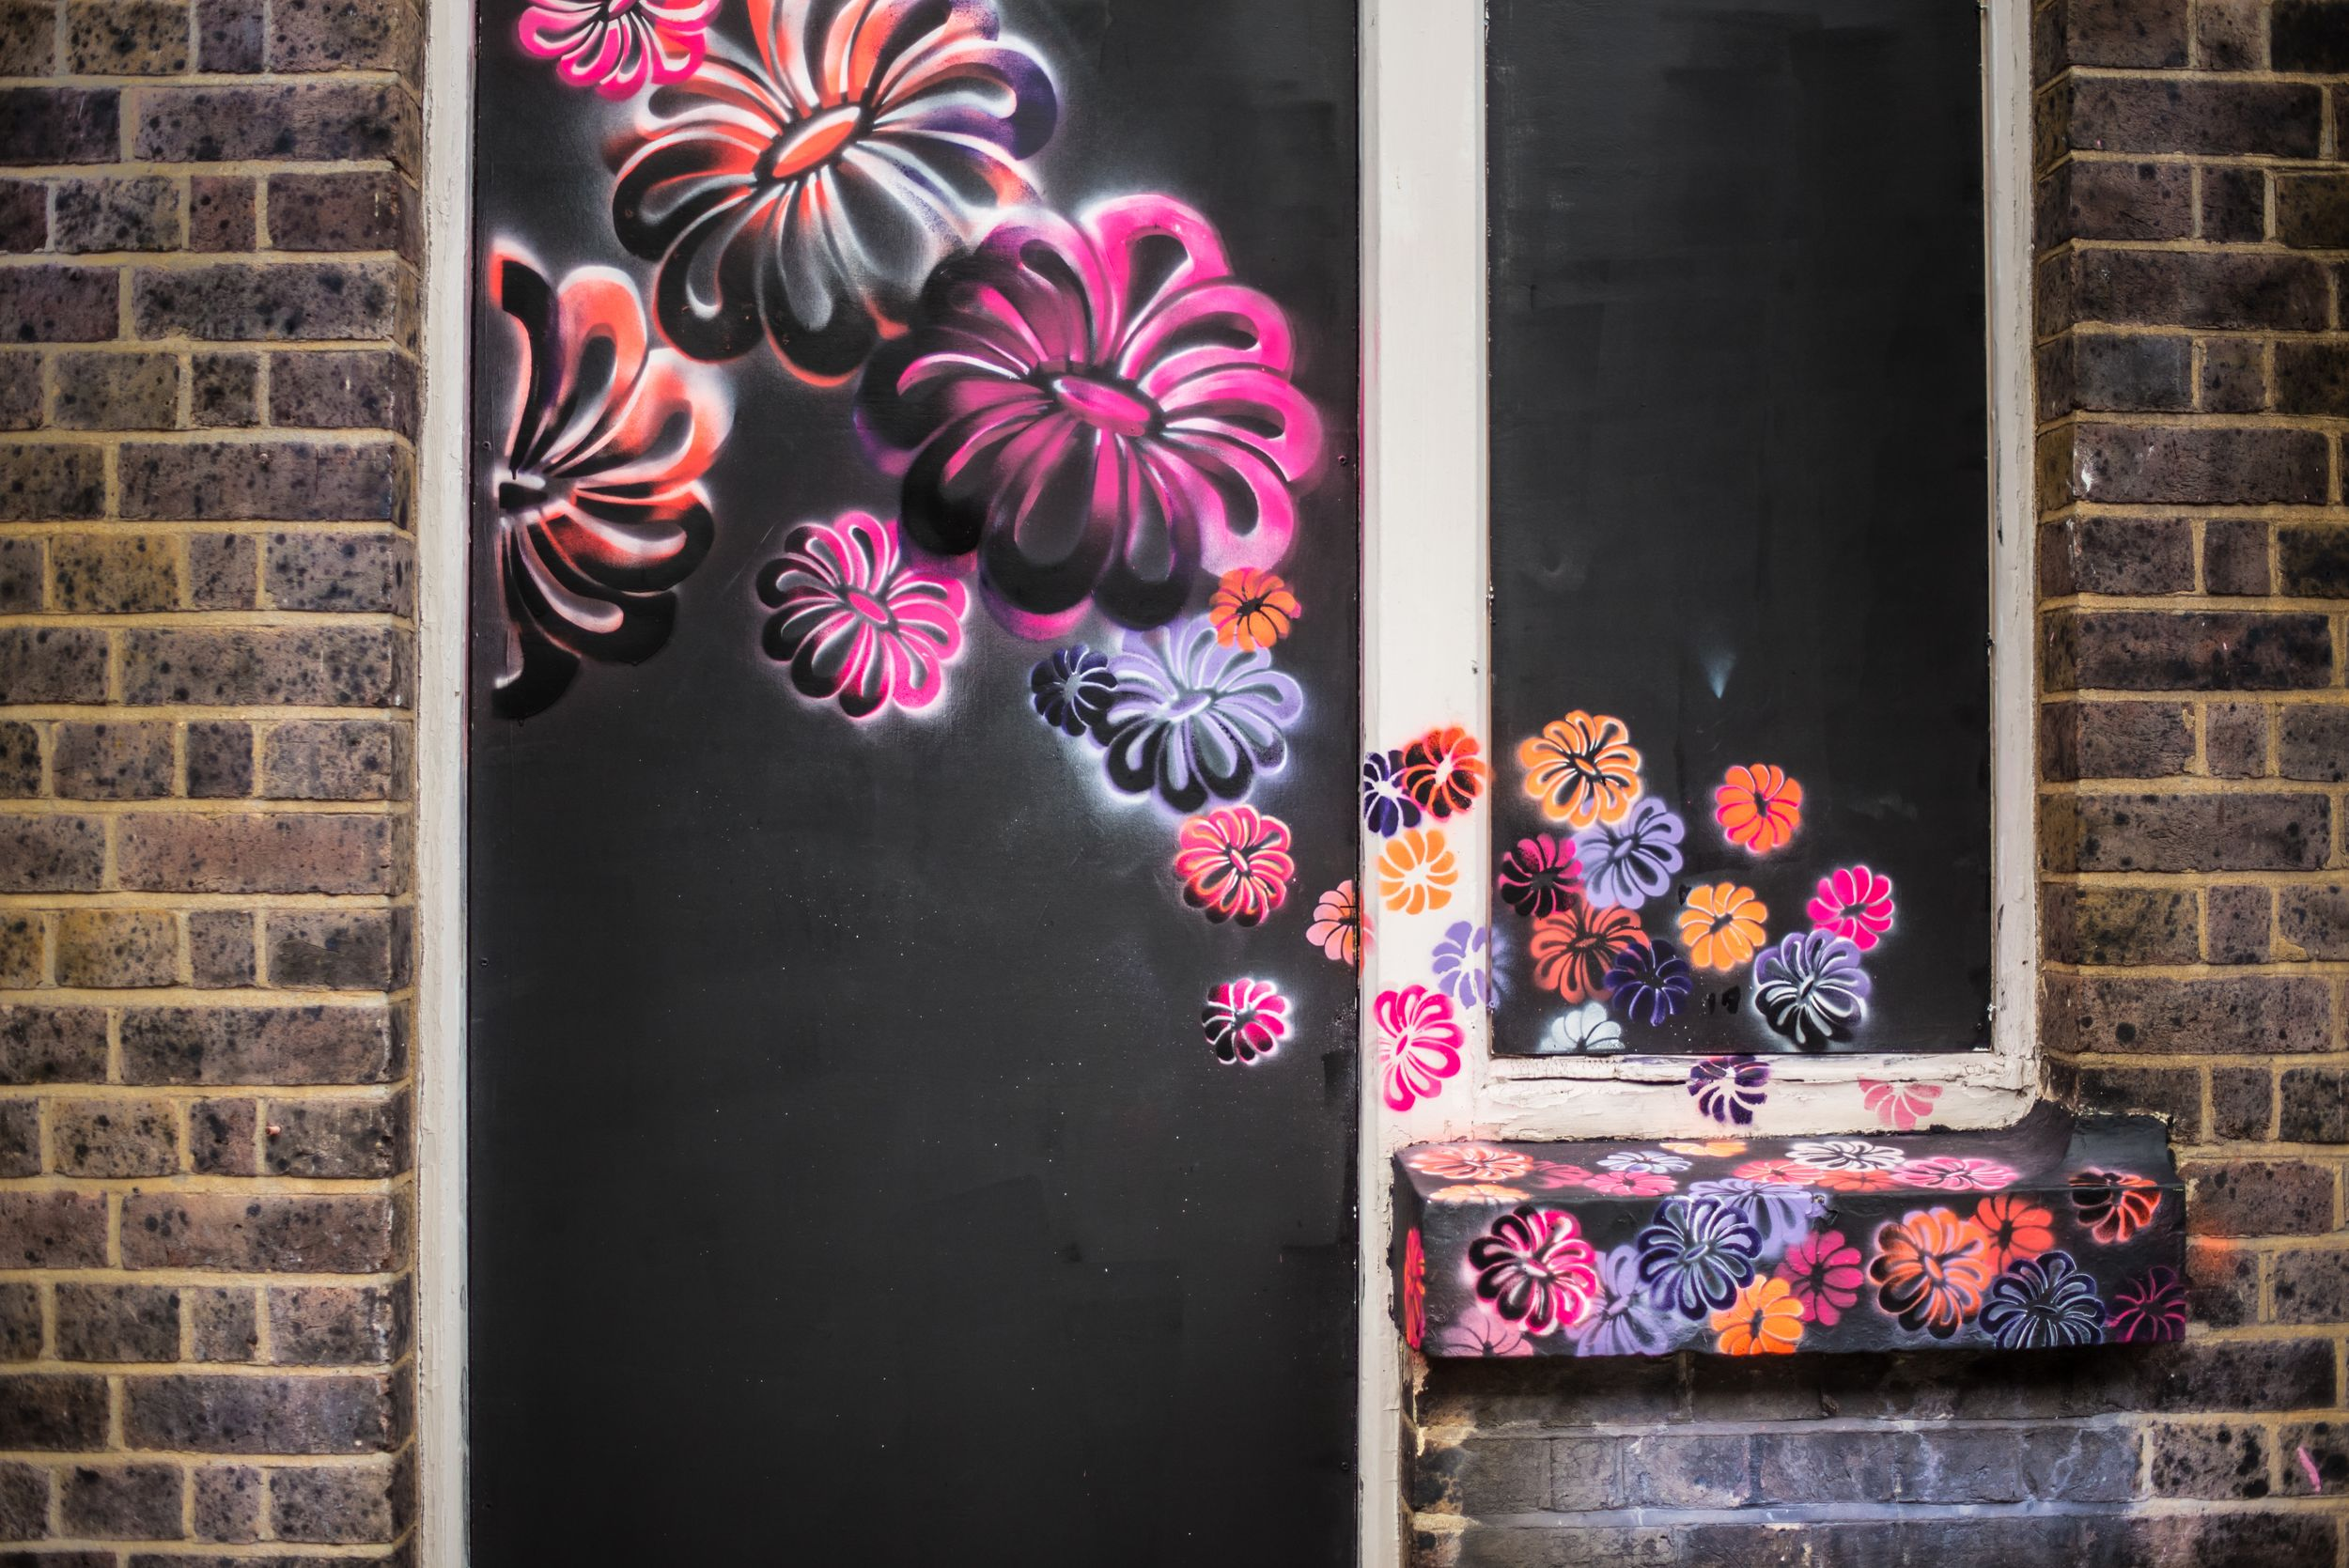 Flower power graffiti wall in London's Shoreditch neighborhood